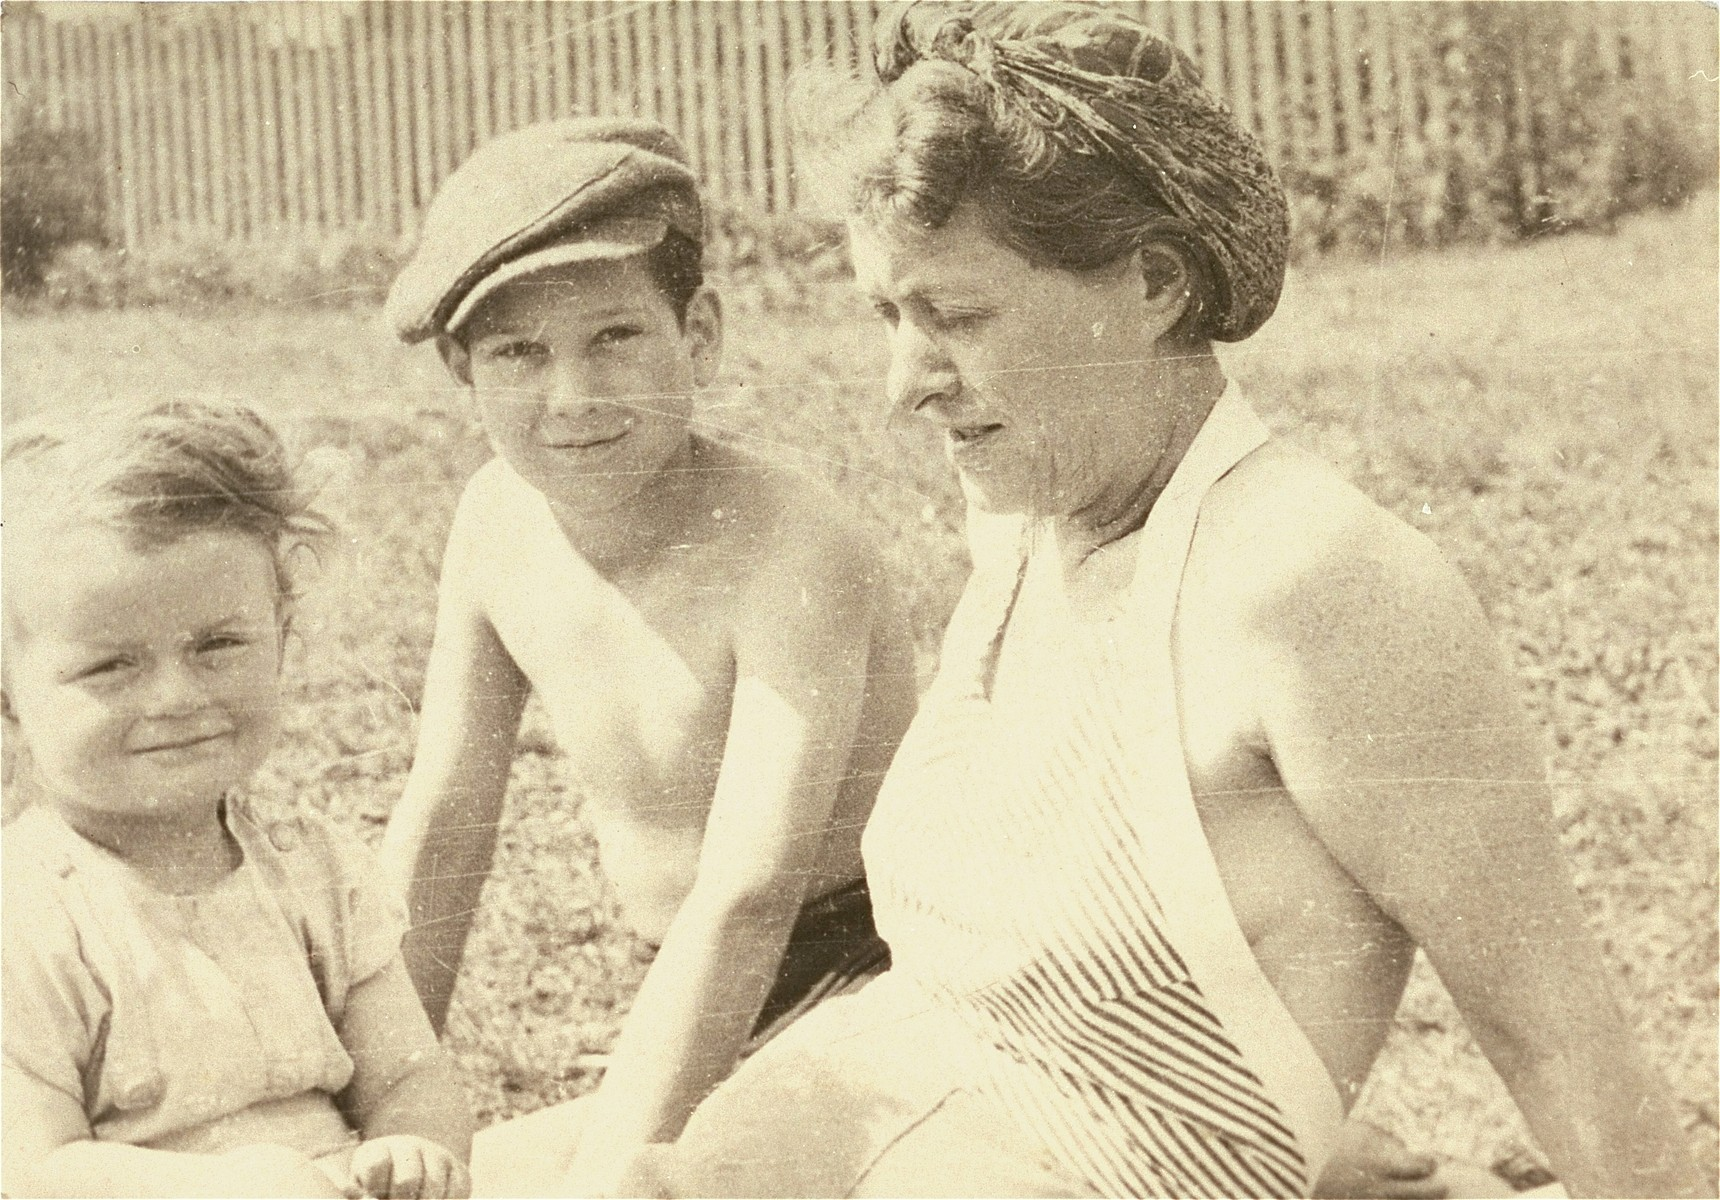 Janek Kon Konorski (center), a Jewish boy in hiding, enjoys a summer holiday with his rescuer, Maria Szelagowska Teski (right) and her daughter, Joanna.  The donor is the son of Maria Teski.